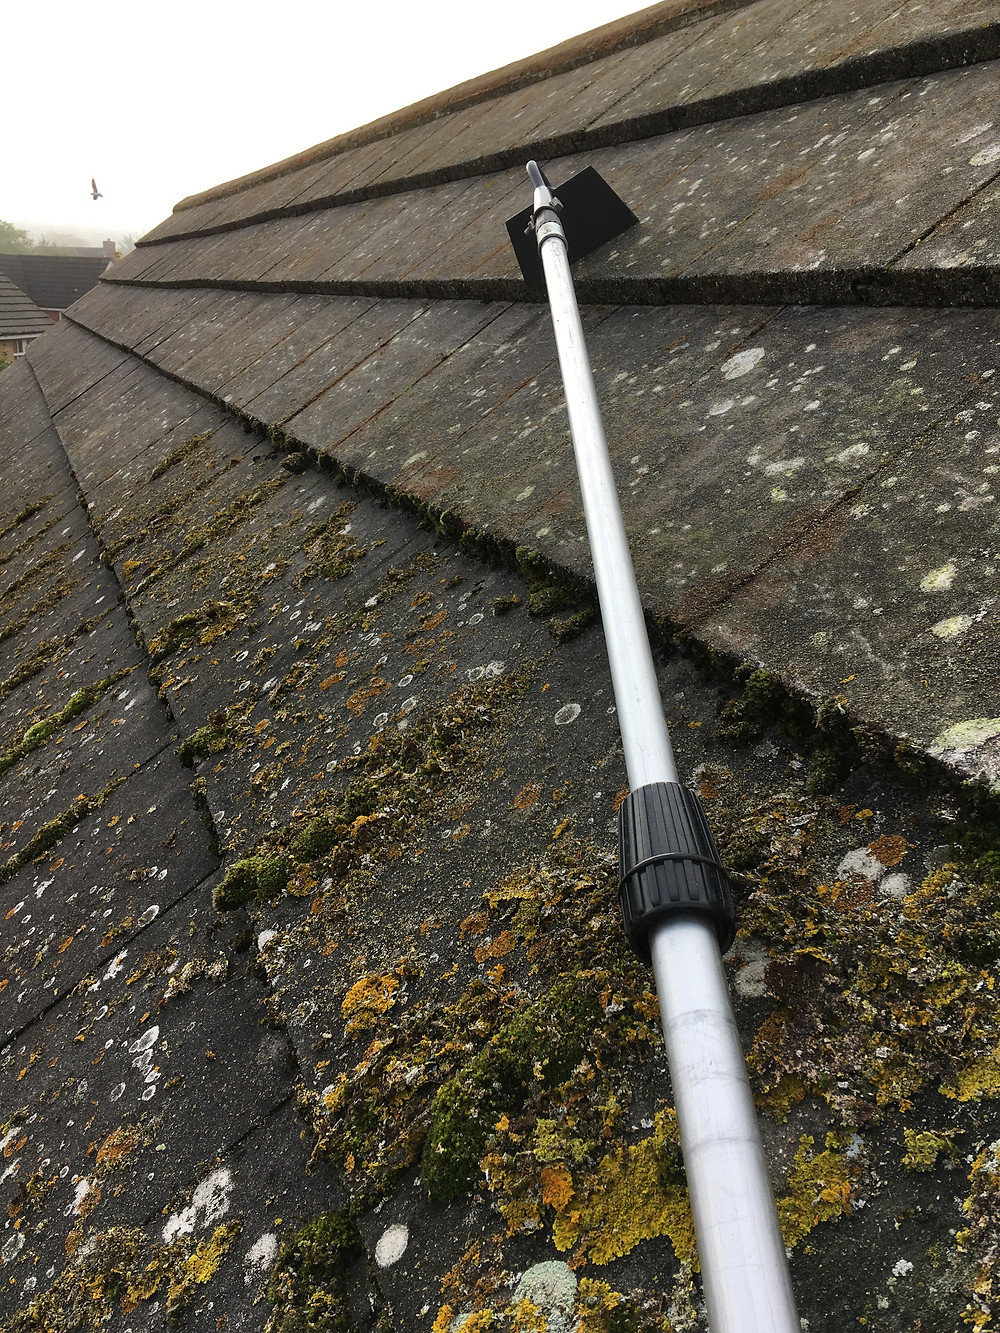 Using a pole and metal scraper to remove moss from a roof in Cambridge